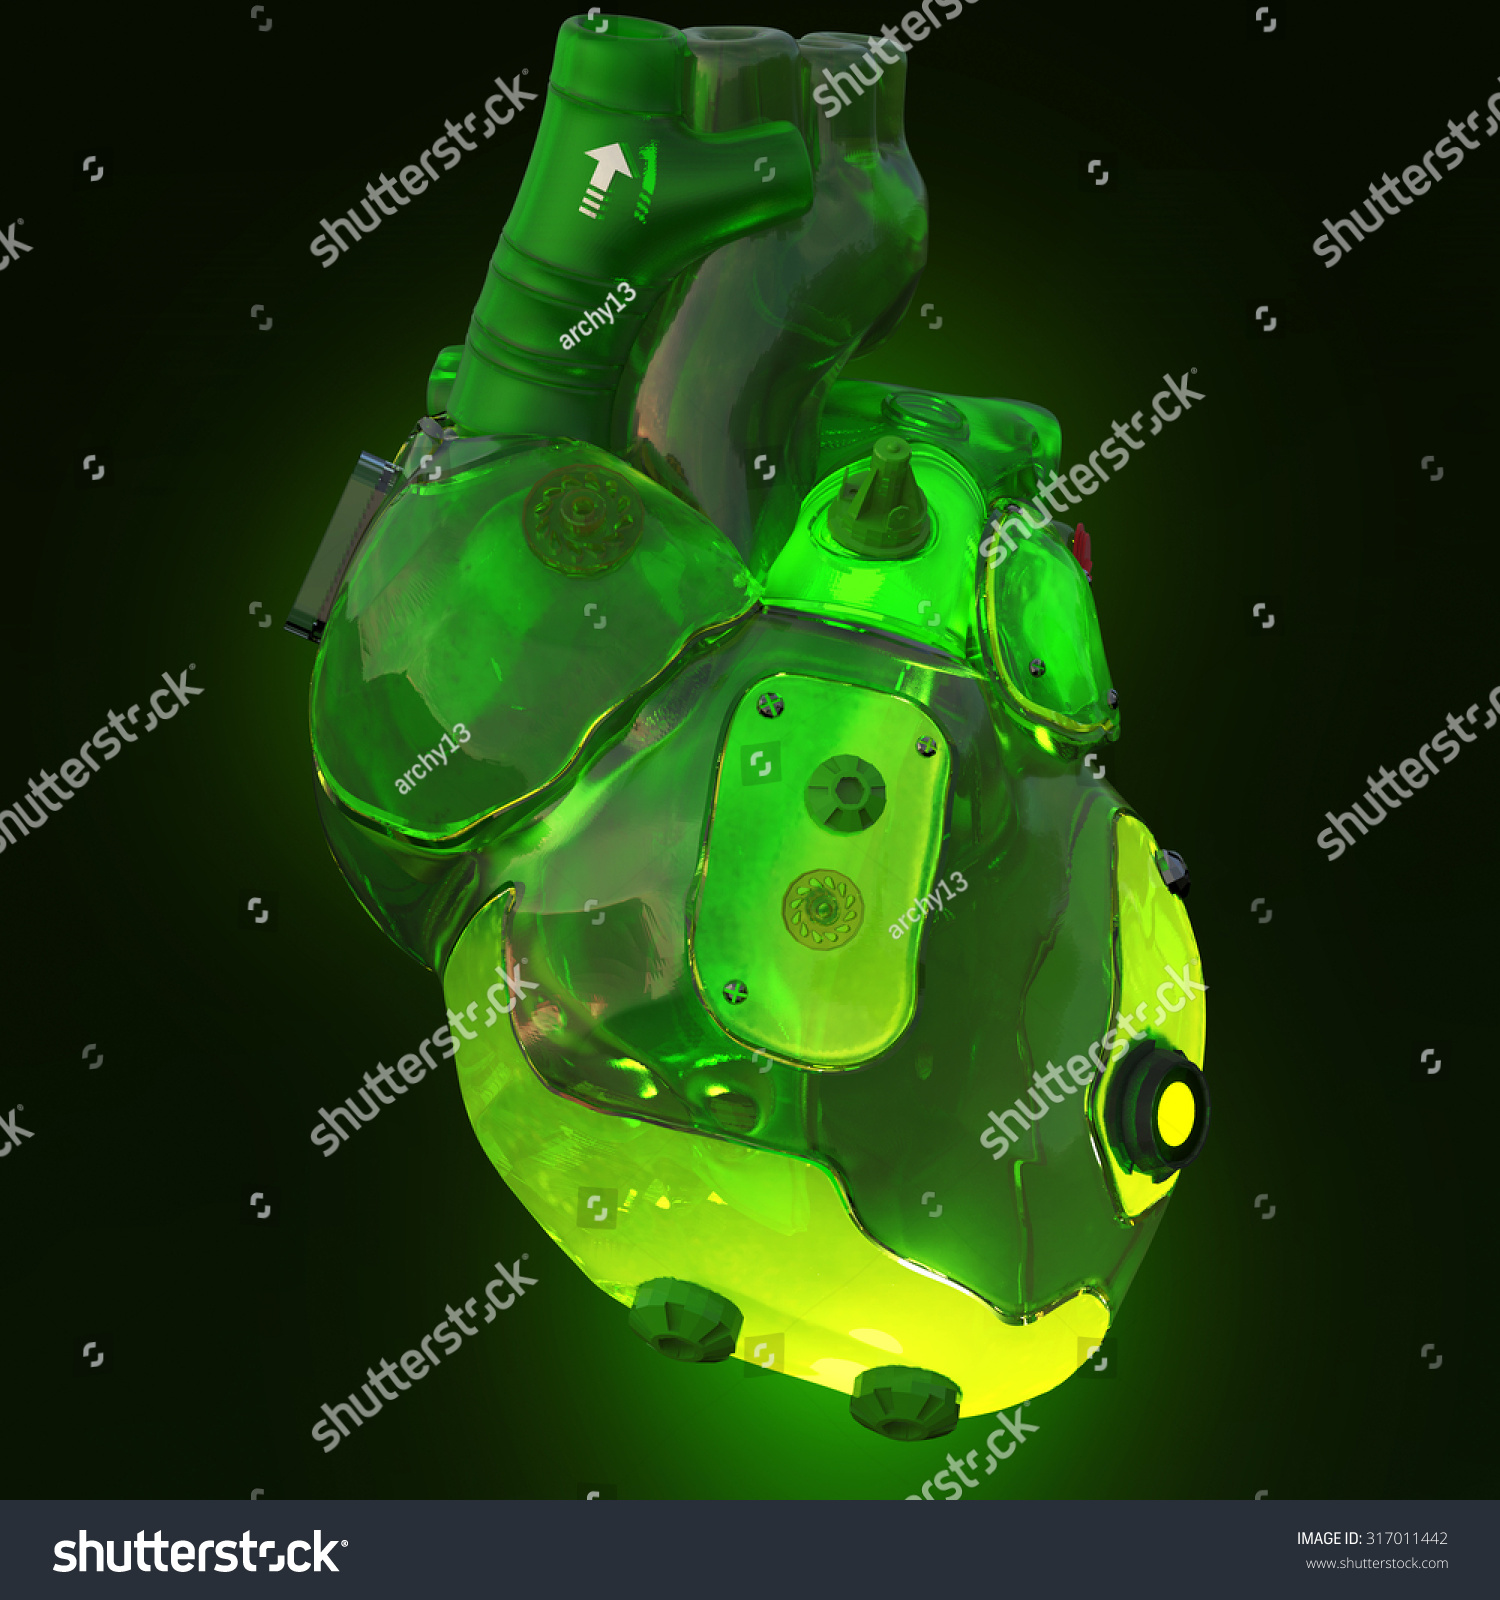 Industrial Light And Magic Render Farm: Green Translucent Toxic Acid Glowing Techno Stock